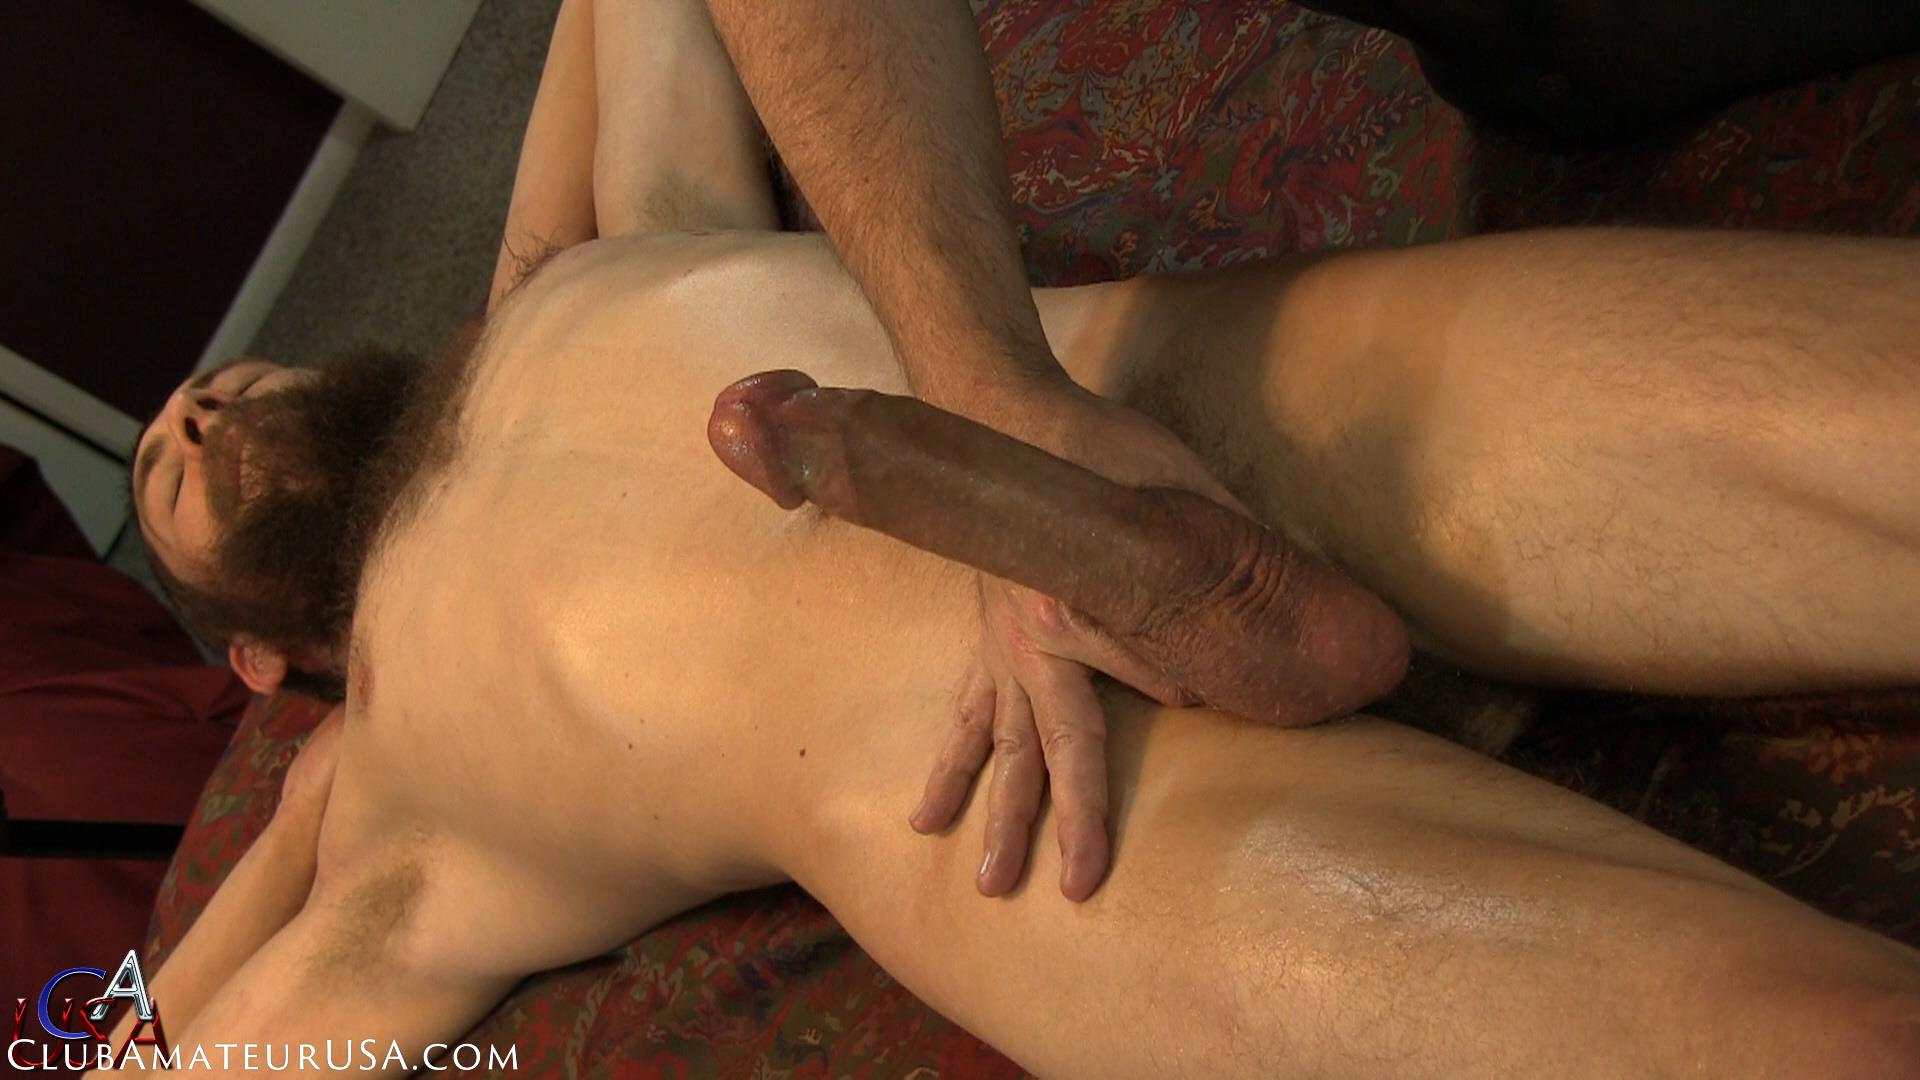 Club-Amateur-USA-Wyatt-Straight-Redneck-Getting-Jerked-Off-Amateur-Gay-Porn-23 Amateur Straight Redneck Gets Jerked Off By Another Guy